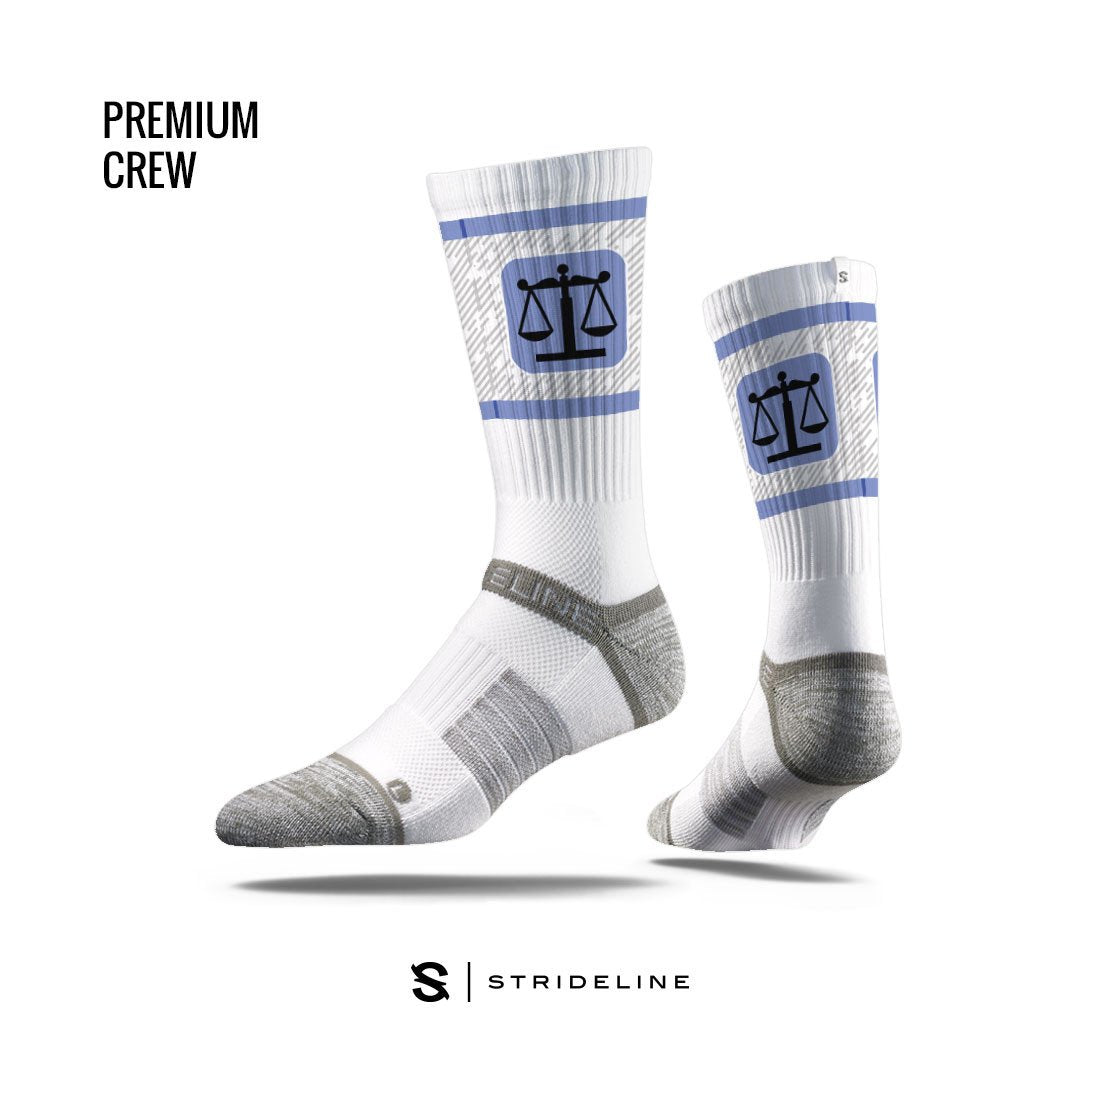 Academy of Citizenship and Empowerment Apparel | Socks | Premium